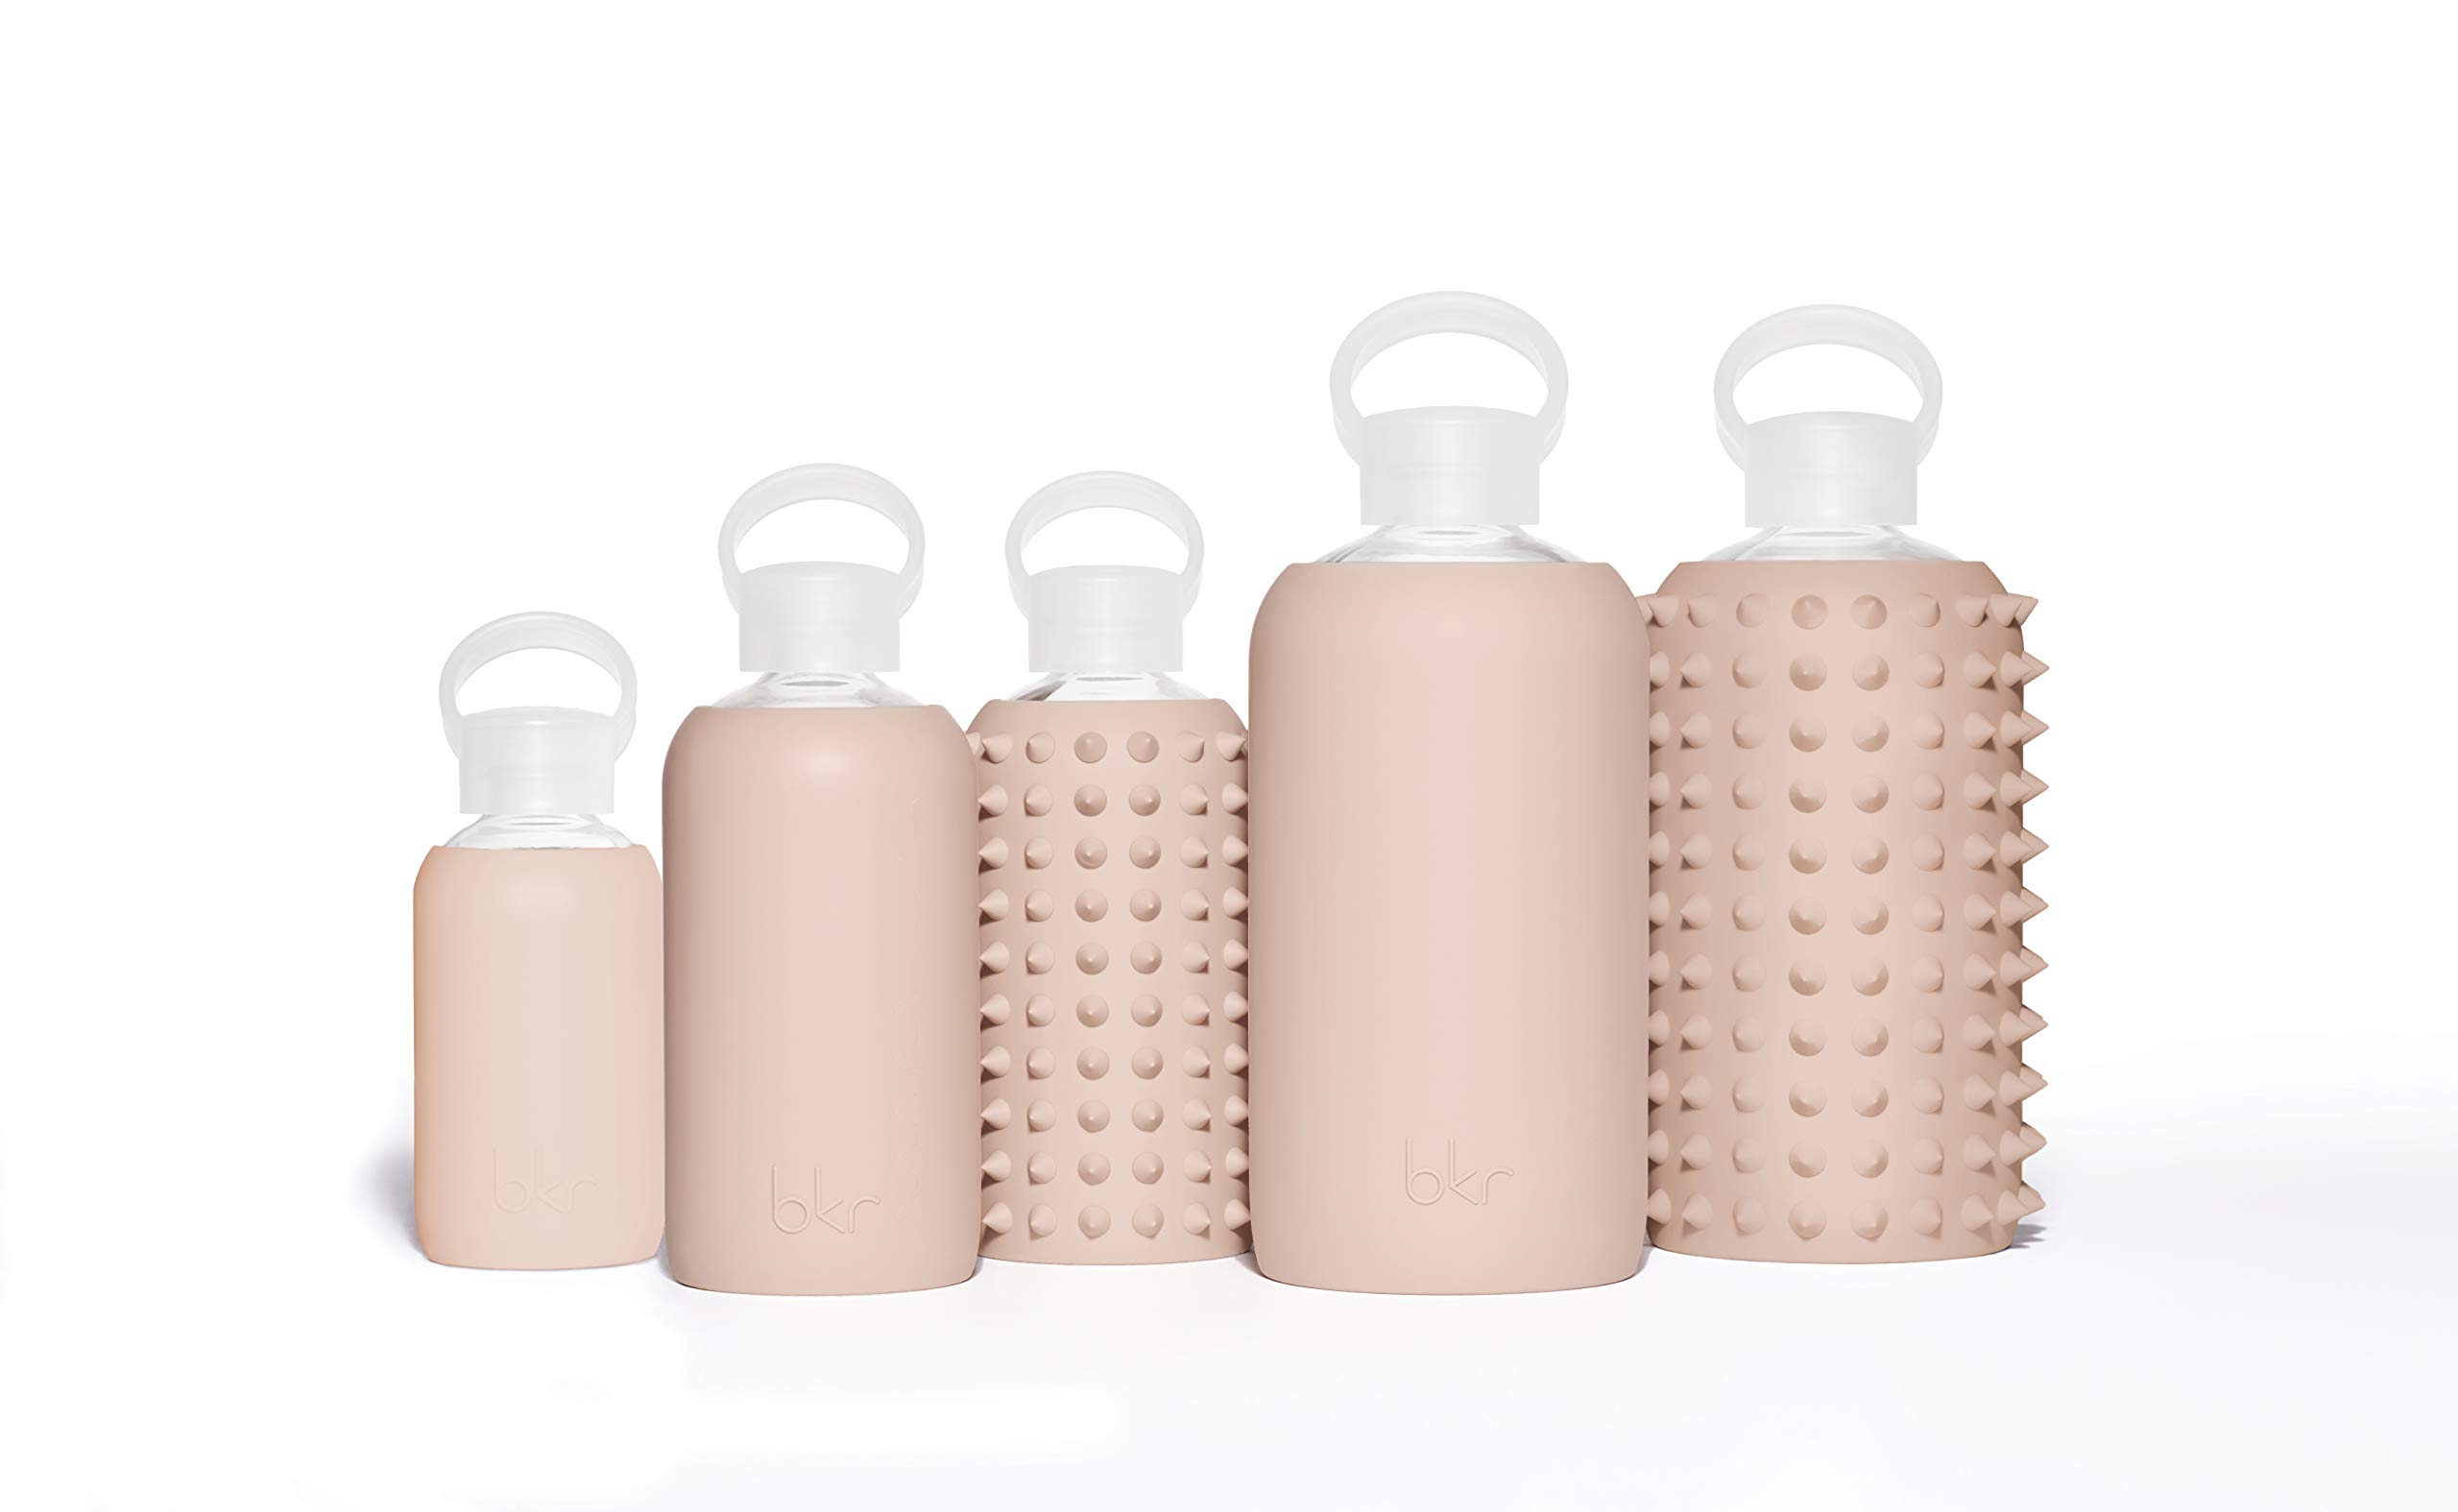 bkr Naked Glass Water Bottle with Smooth Silicone Sleeve for Travel, Narrow Mouth, BPA-Free & Dishwasher Safe, Opaque Light Chocolate Milk Nude, 8 oz / 250 mL by bkr (Image #4)